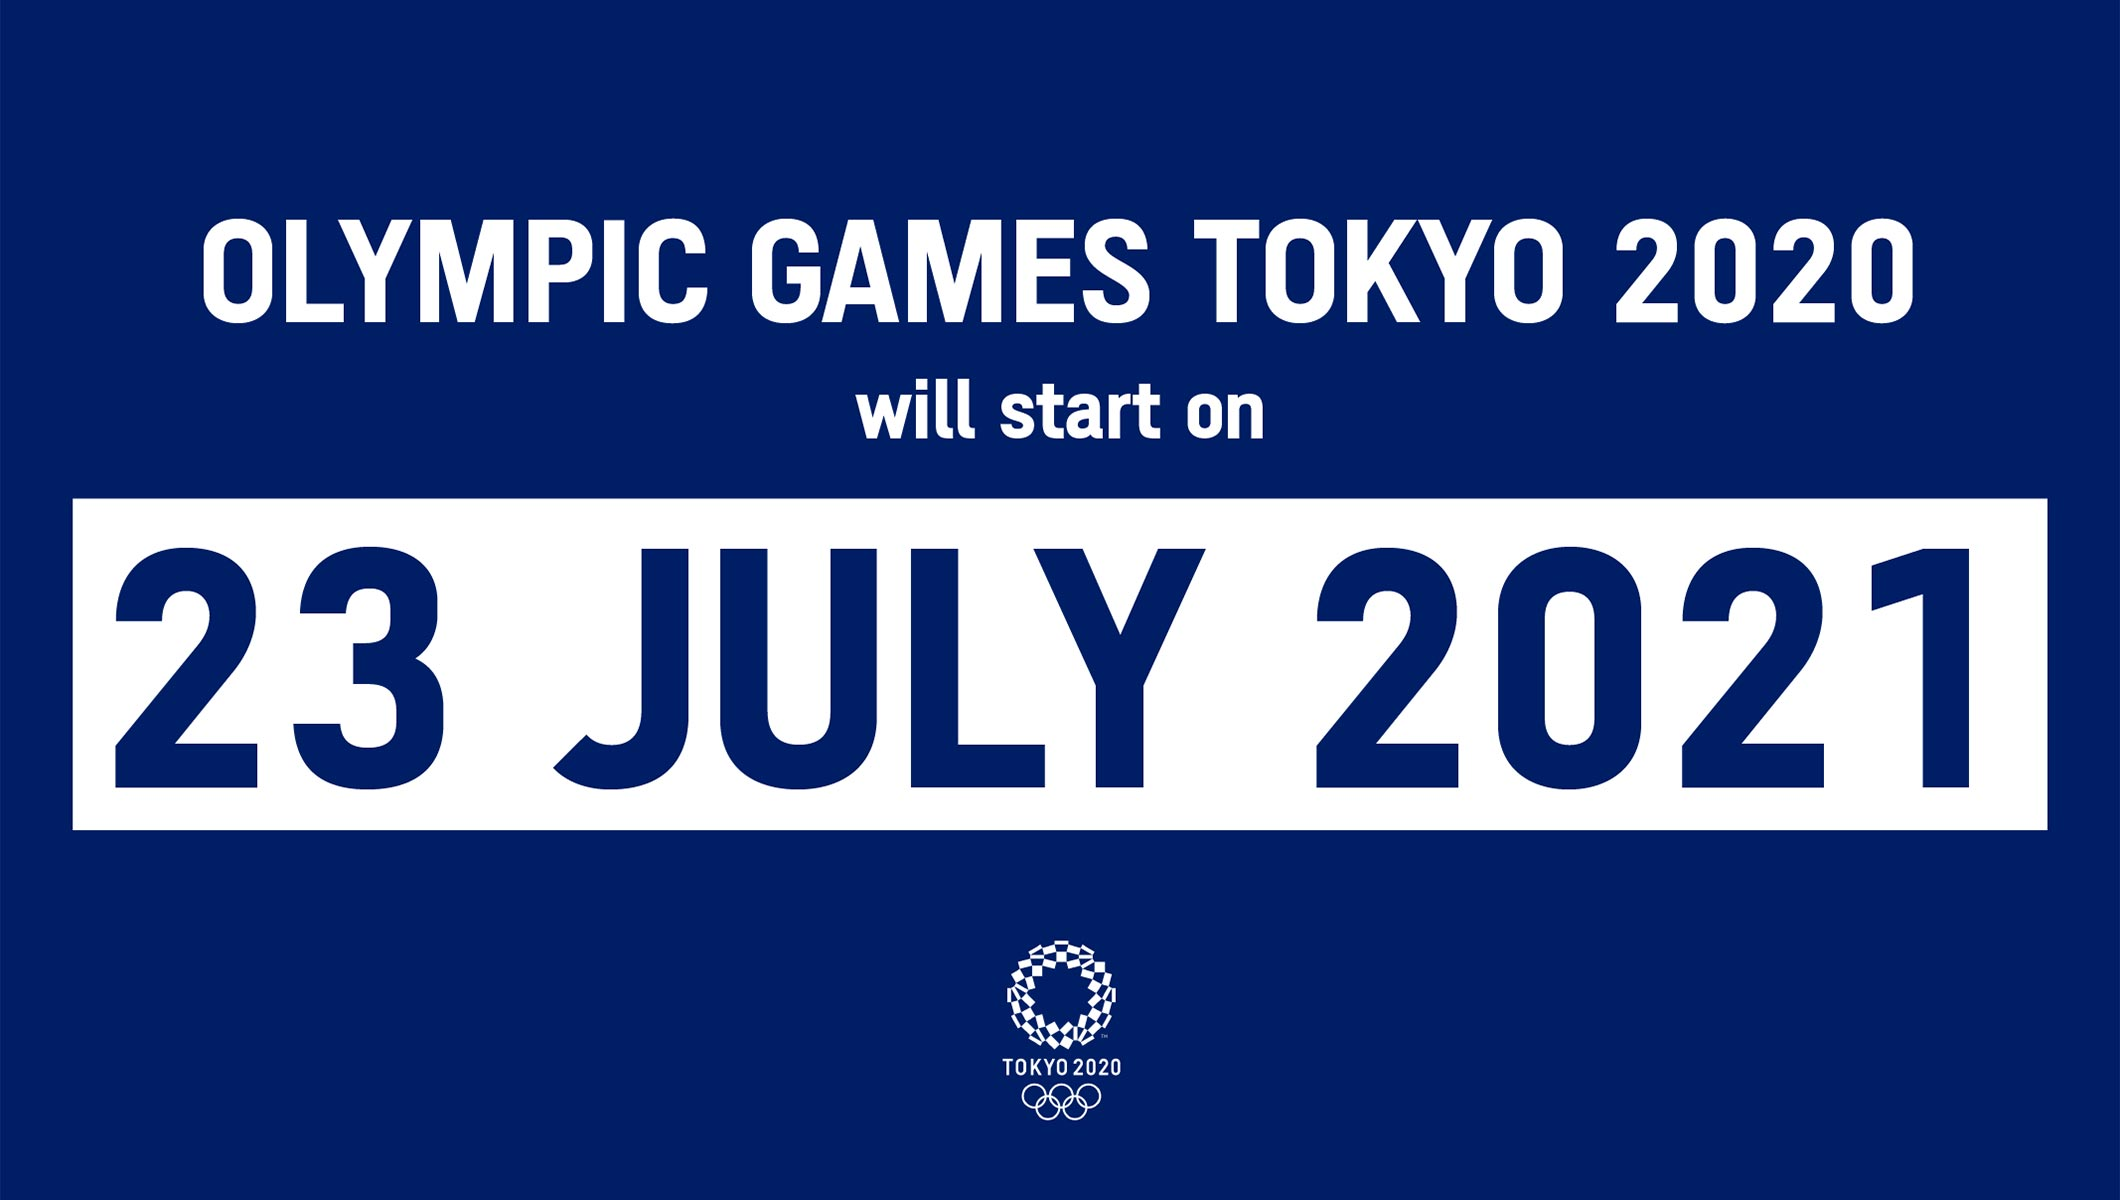 IOC, IPC, Tokyo 2020 Organising Committee and Tokyo Metropolitan Government announce new dates for the Olympic and Paralympic Games Tokyo 2020 thumbnail